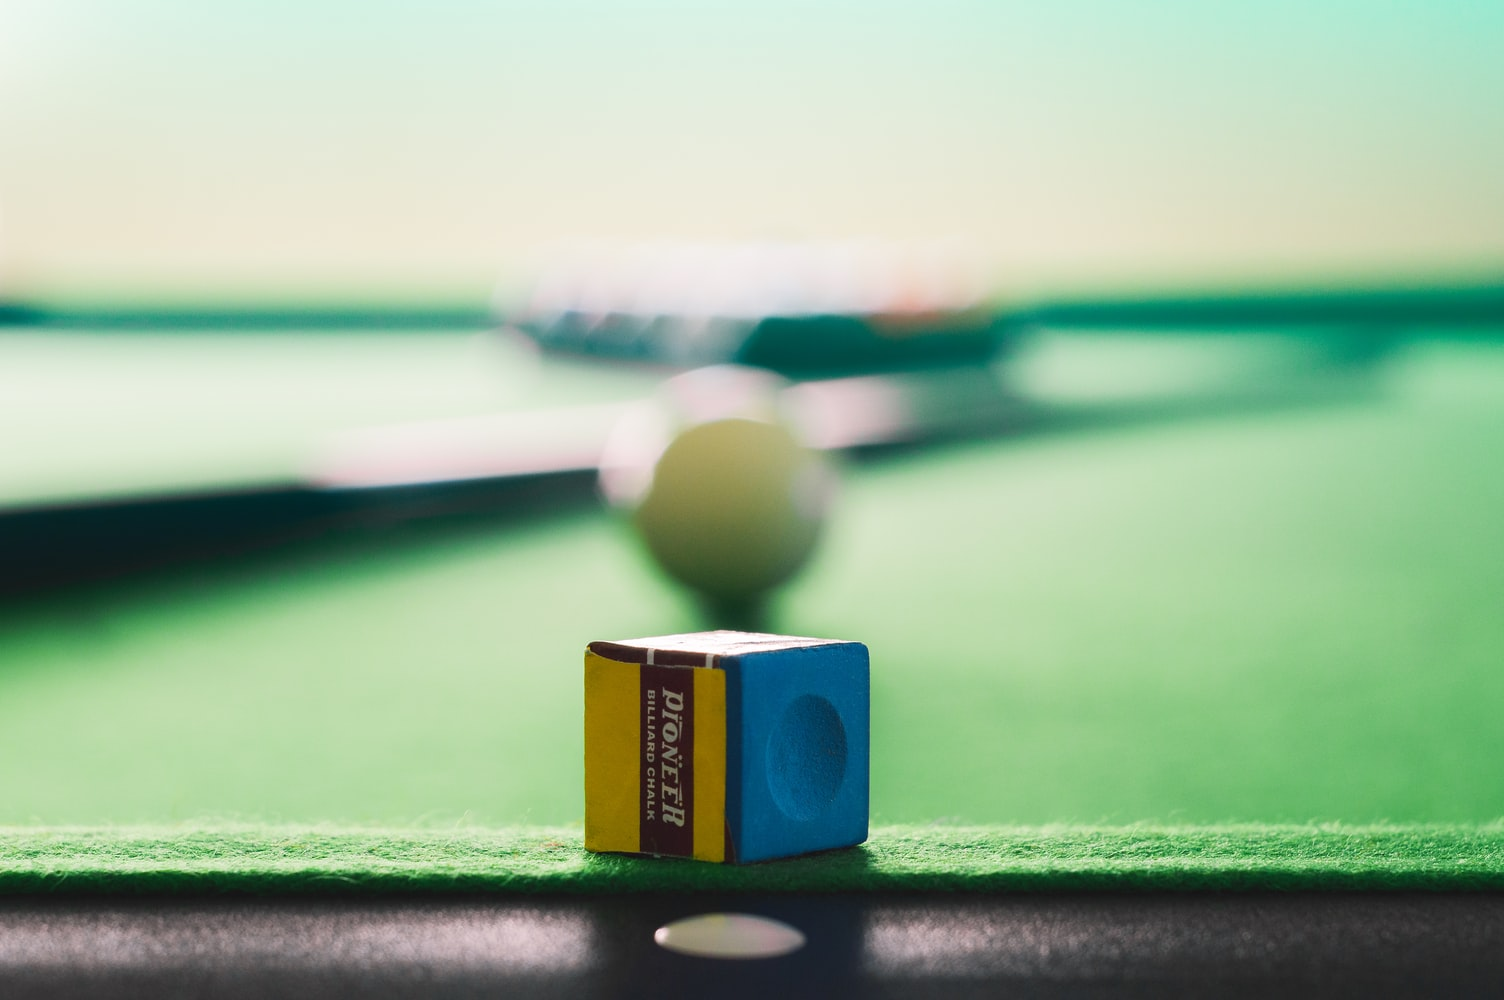 Pool chalk on top of a billiard table